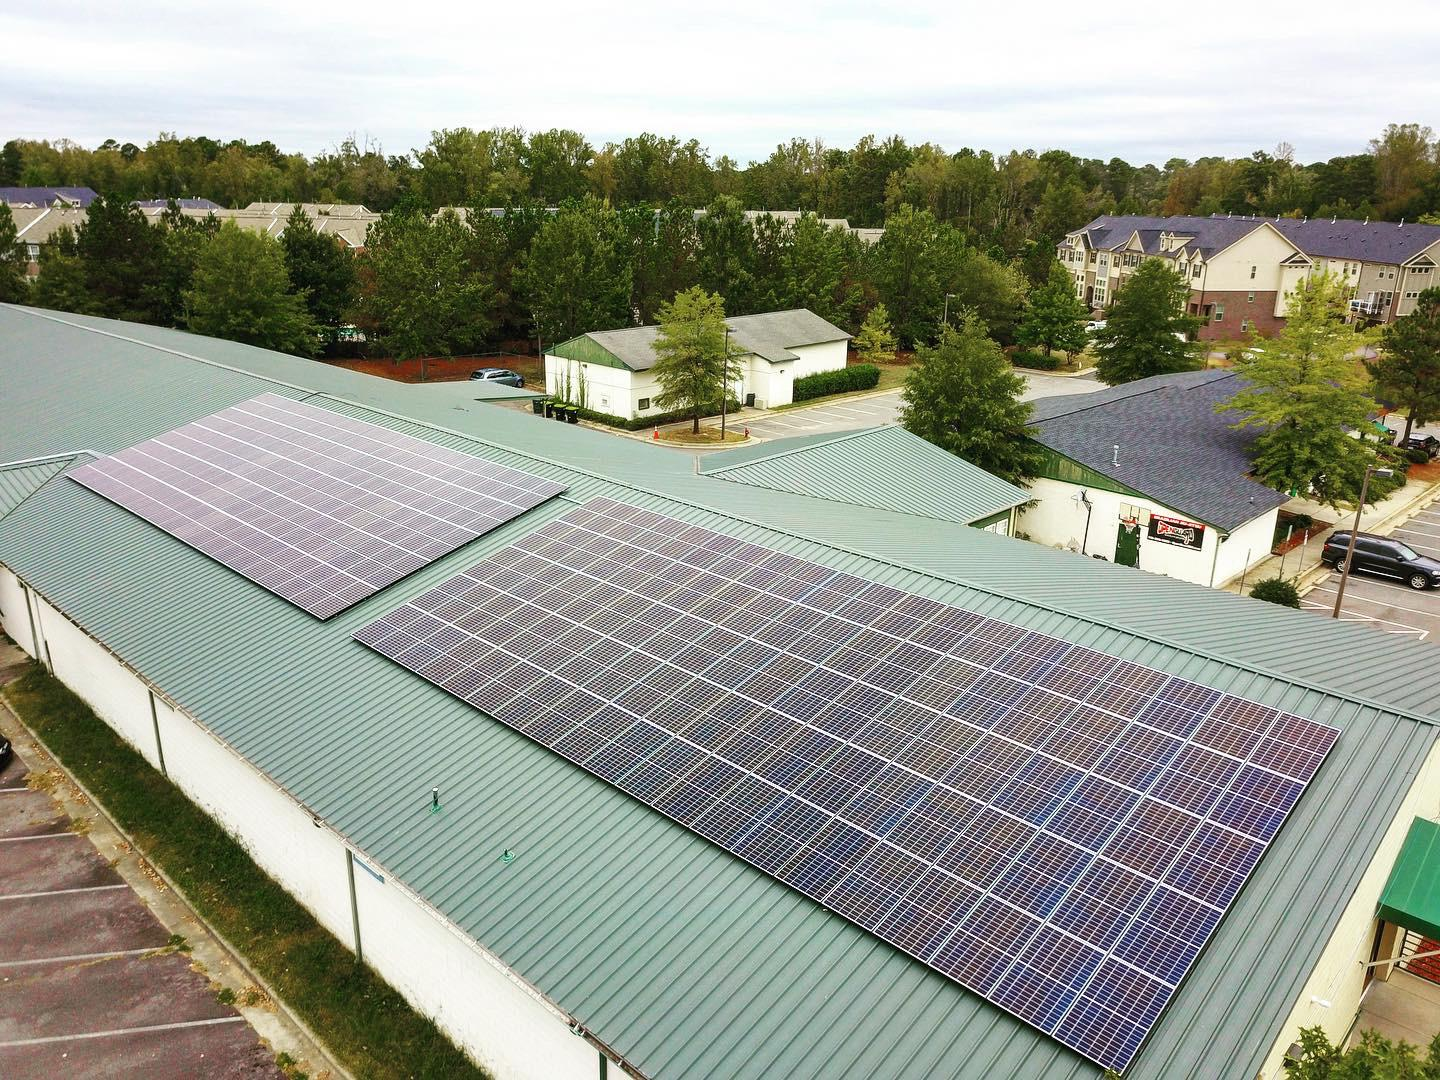 8msolar Profile And Reviews 2019 Energysage